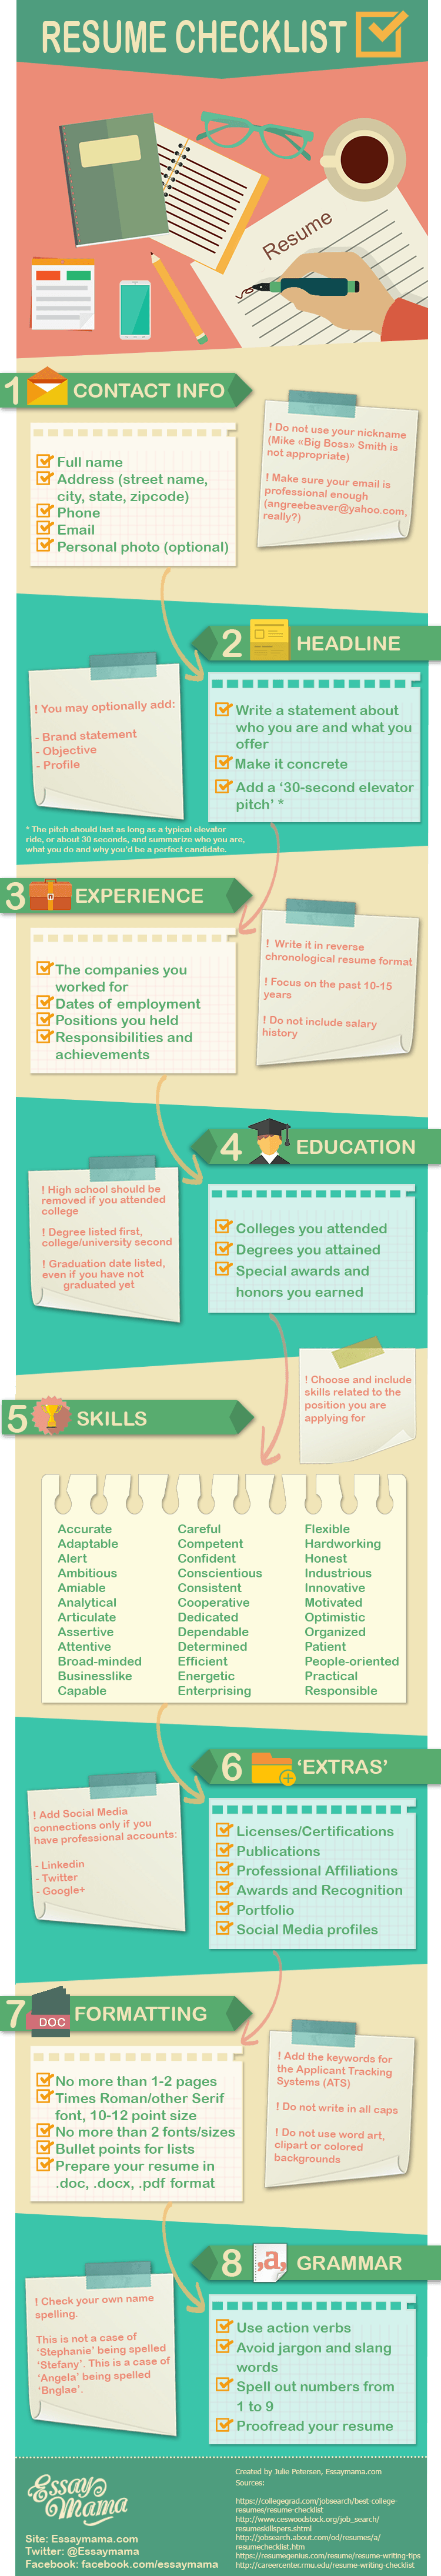 resume_checklist_infographic | Careers In Design Vacancies | Pinterest